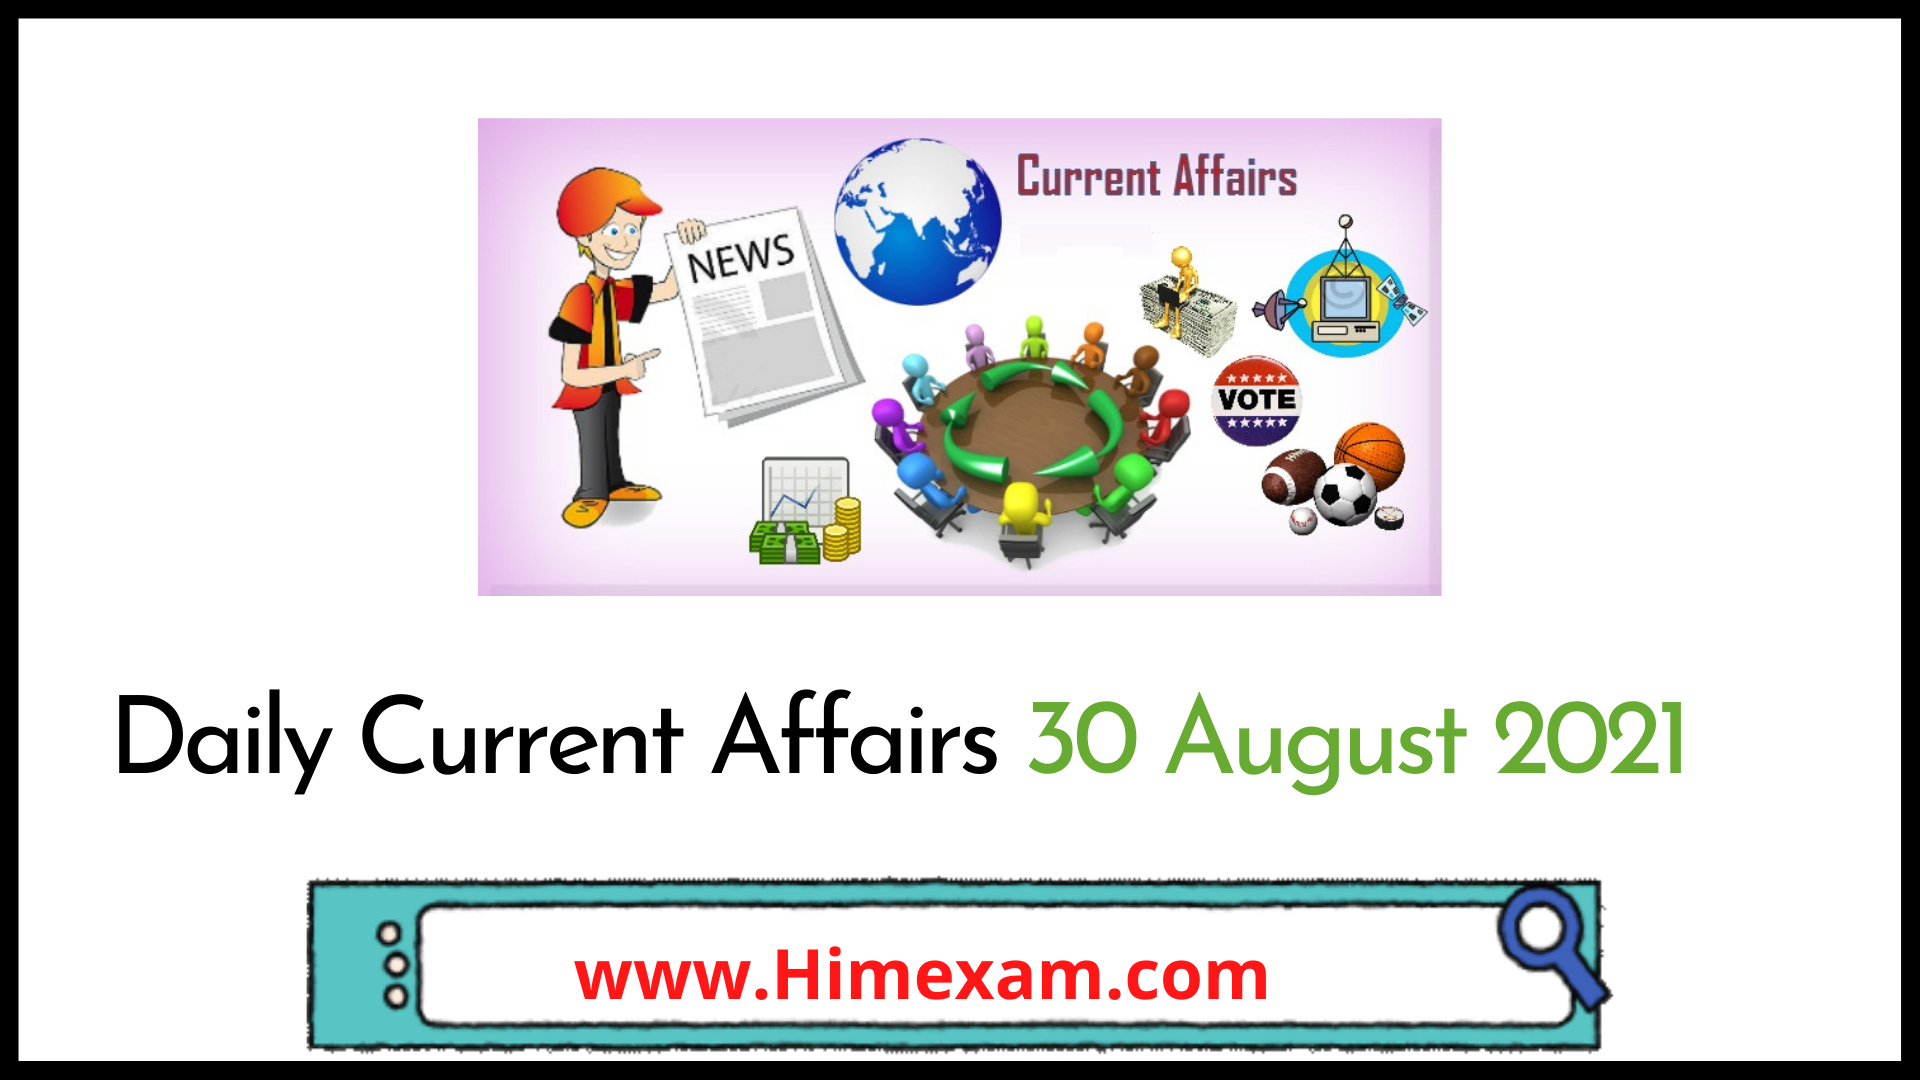 Daily Current Affairs 30 August 2021